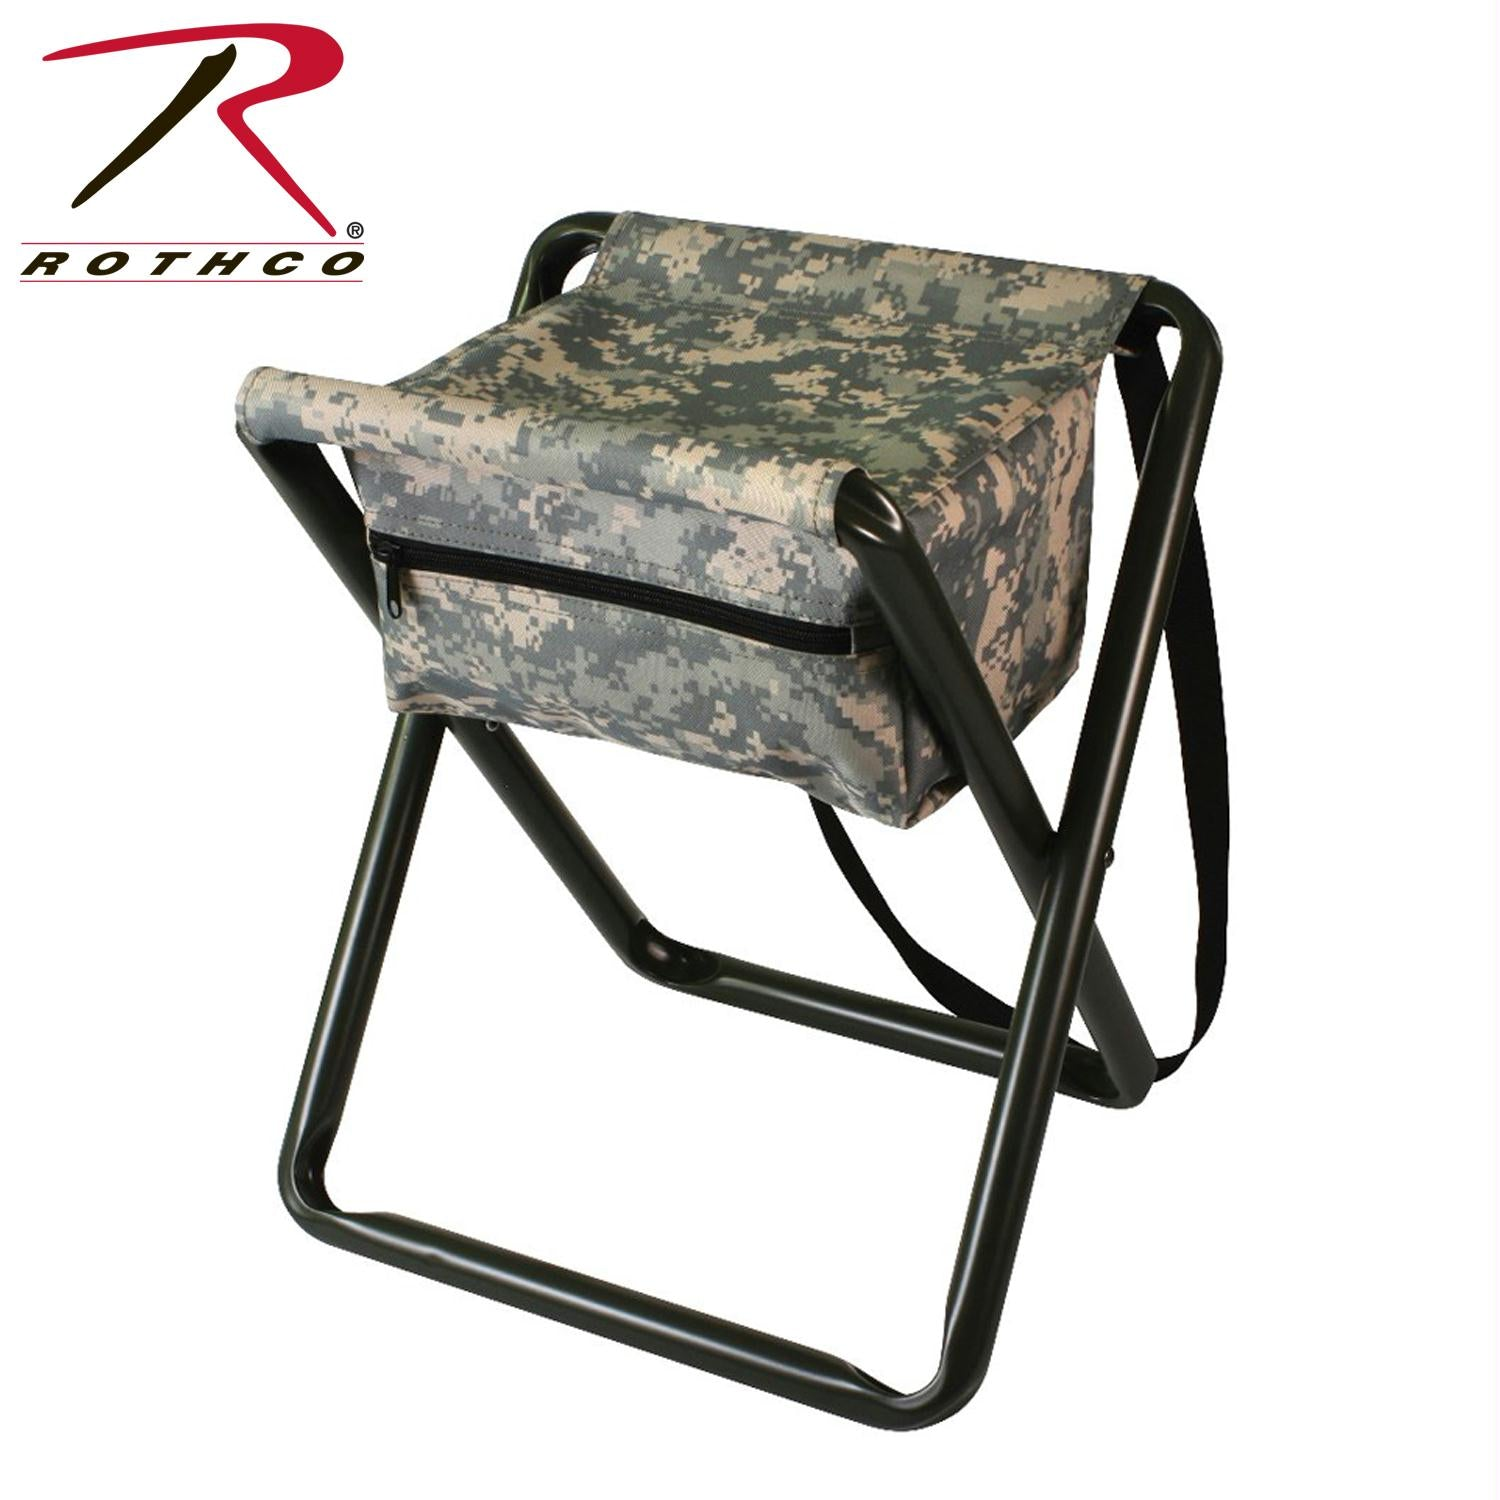 Rothco Deluxe Stool With Pouch - ACU Digital Camo